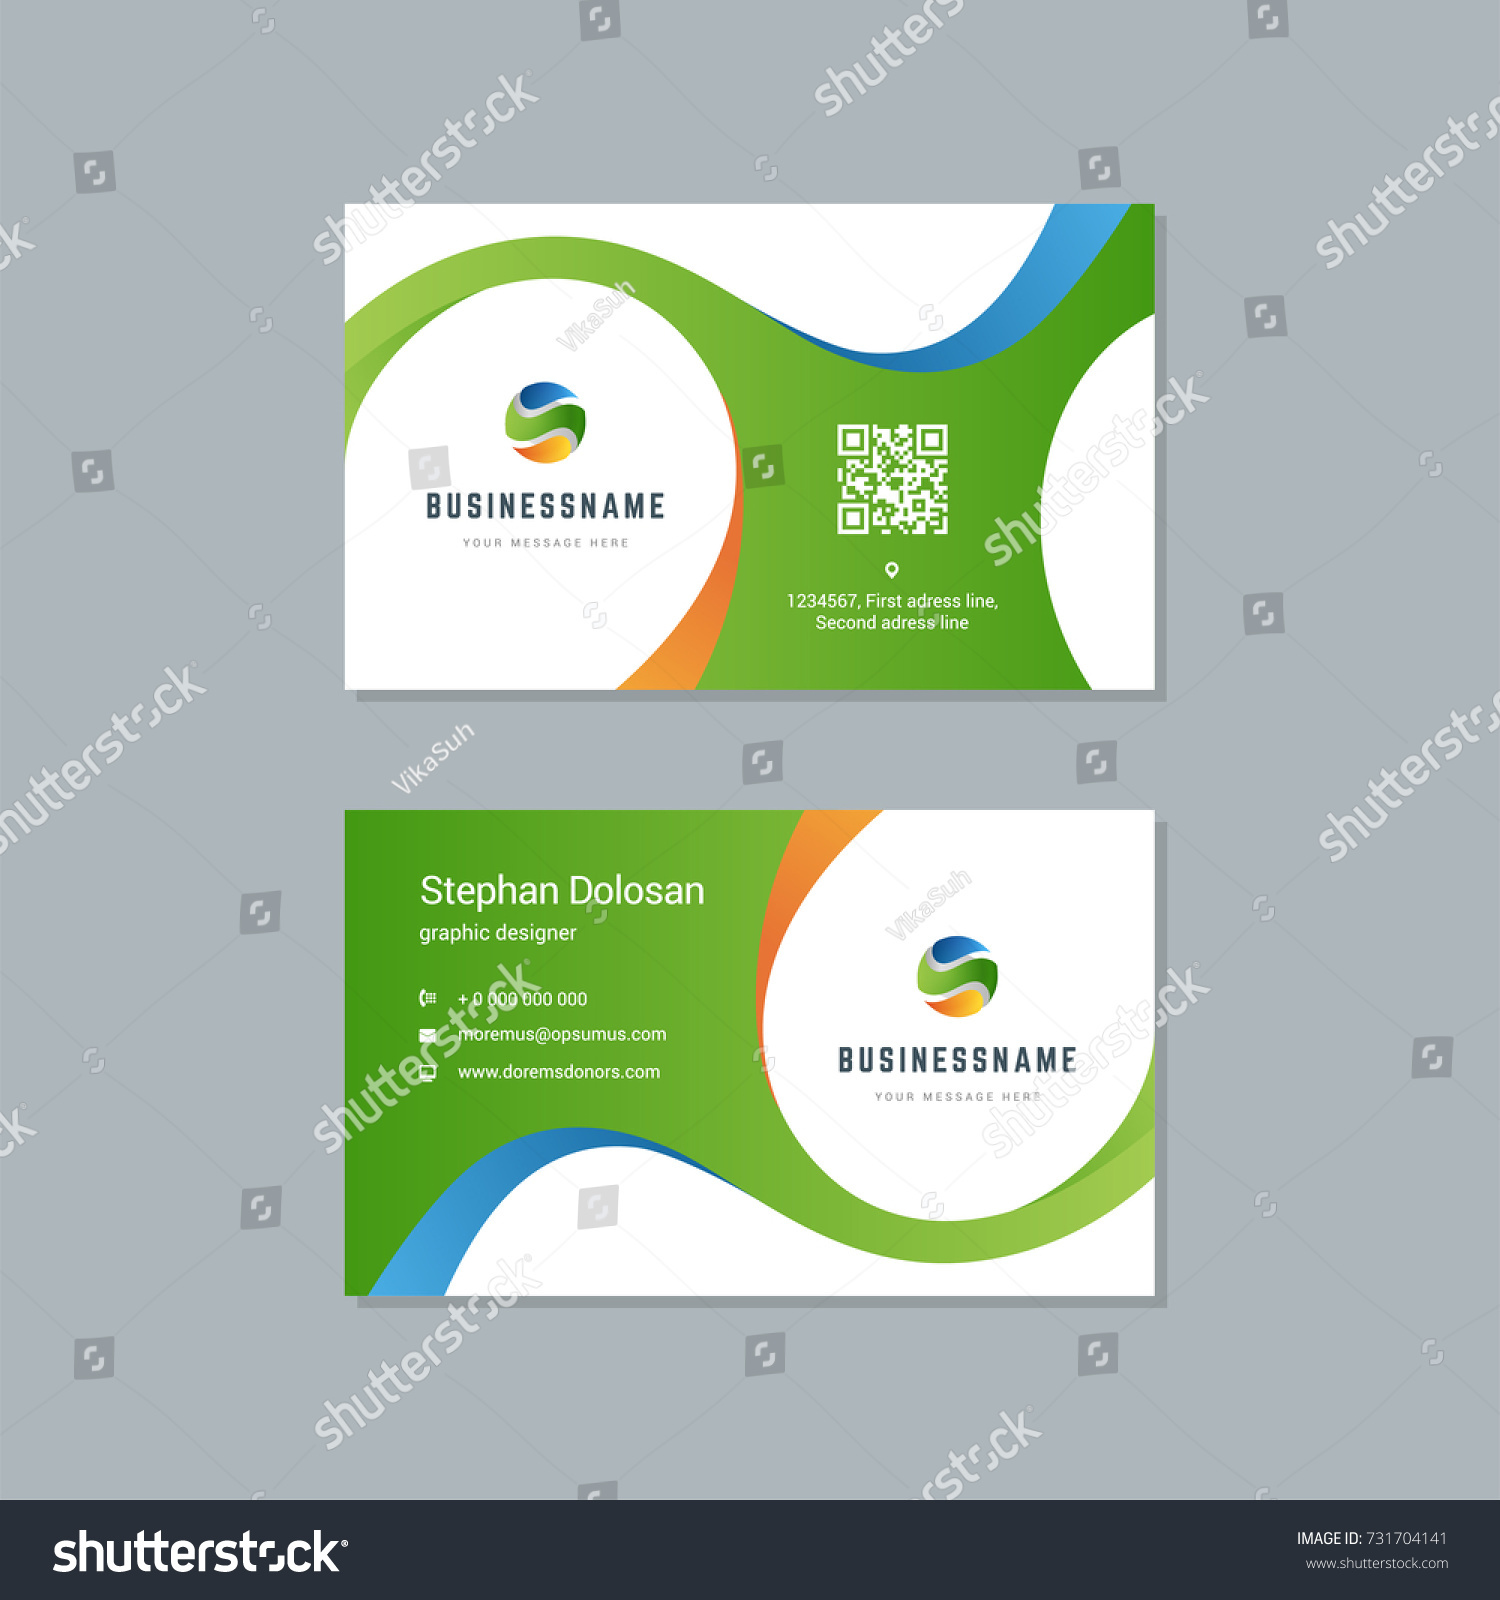 business card design trendy colorful template stock vector hd